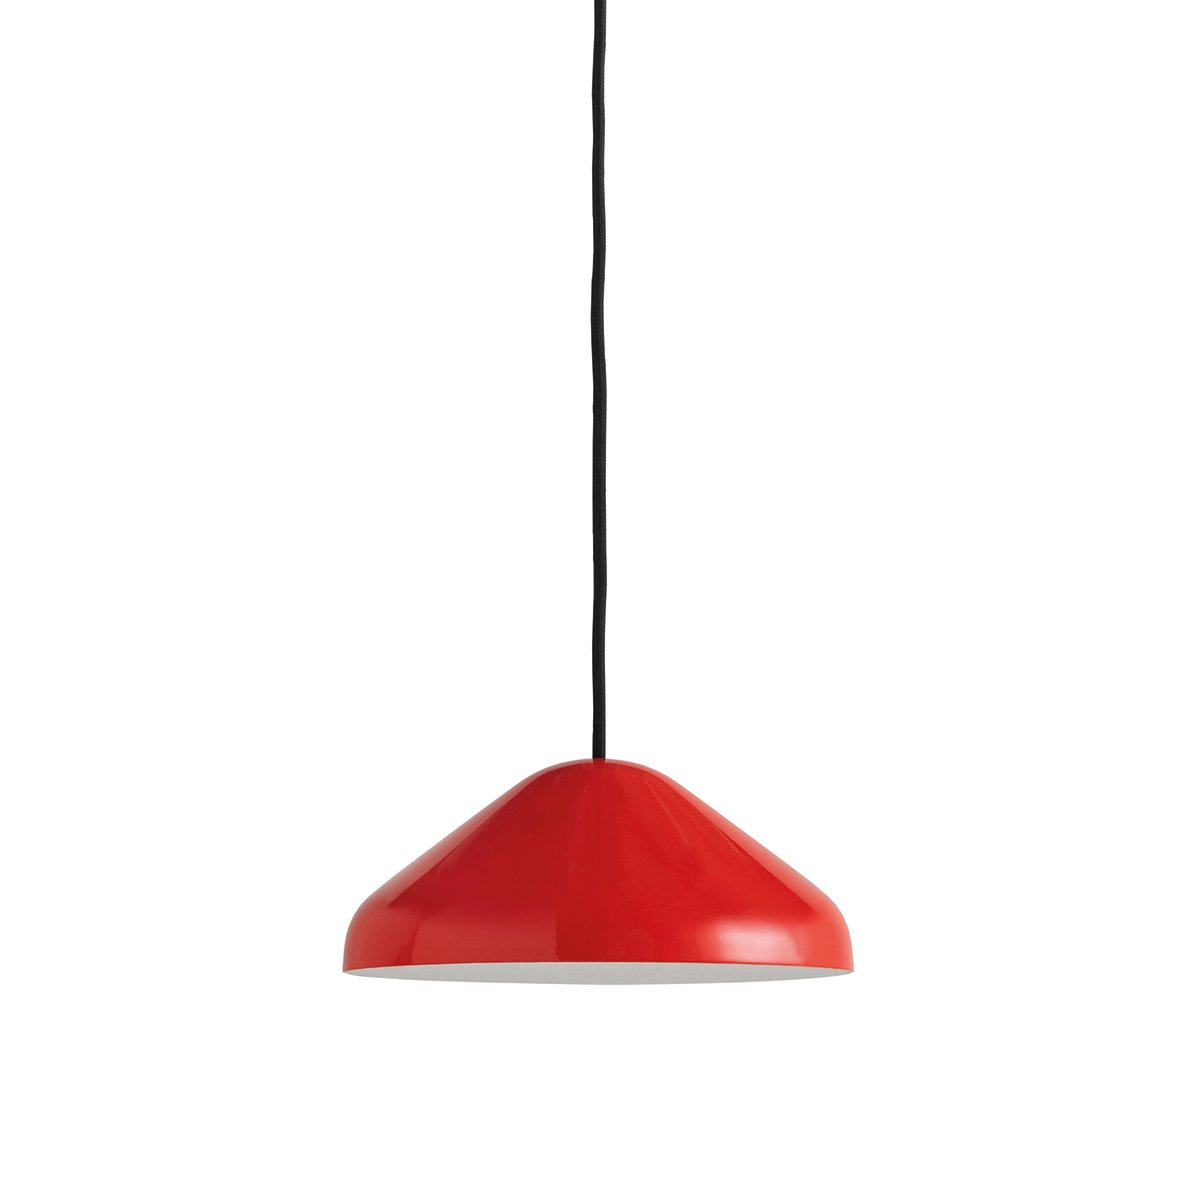 HAY Pao Steel Hanglamp - � 23 x h. 10 cm. - Red